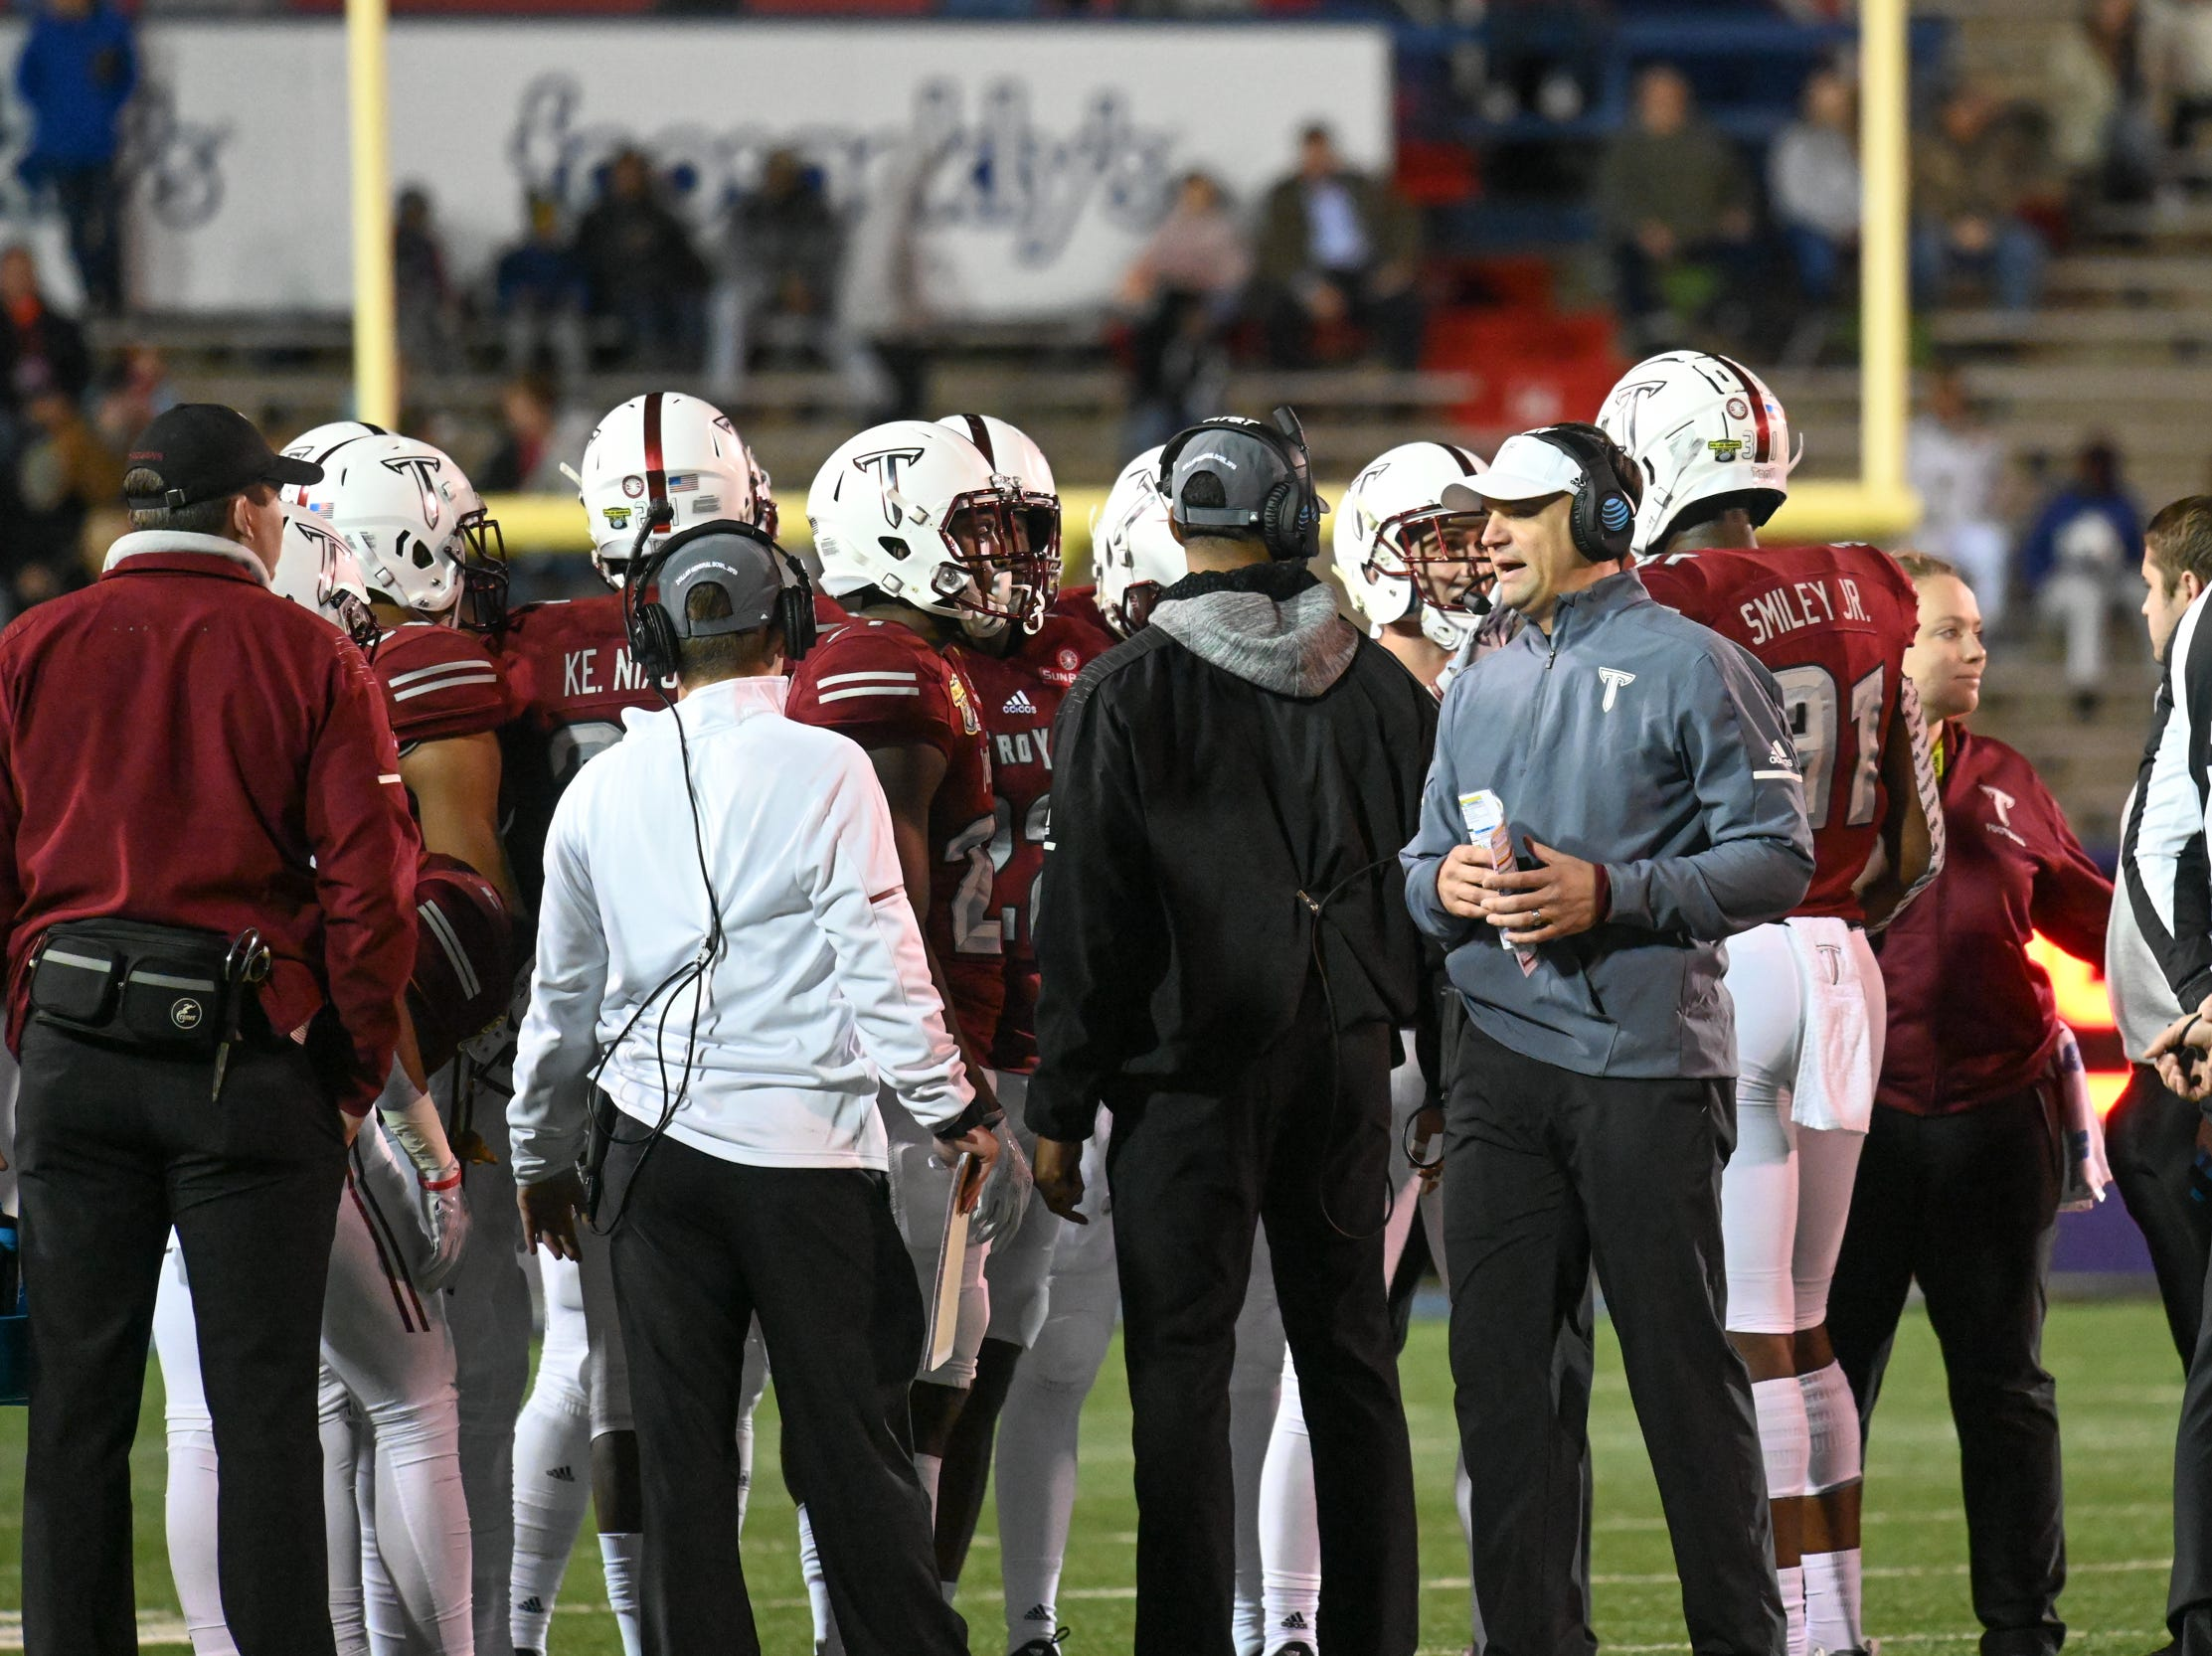 Troy head coach Neal Brown talks to the team during a timeout against Buffalo during the Dollar General Bowl held at Ladd-Peebles Stadium in Mobile on Saturday, Dec. 22, 2018.